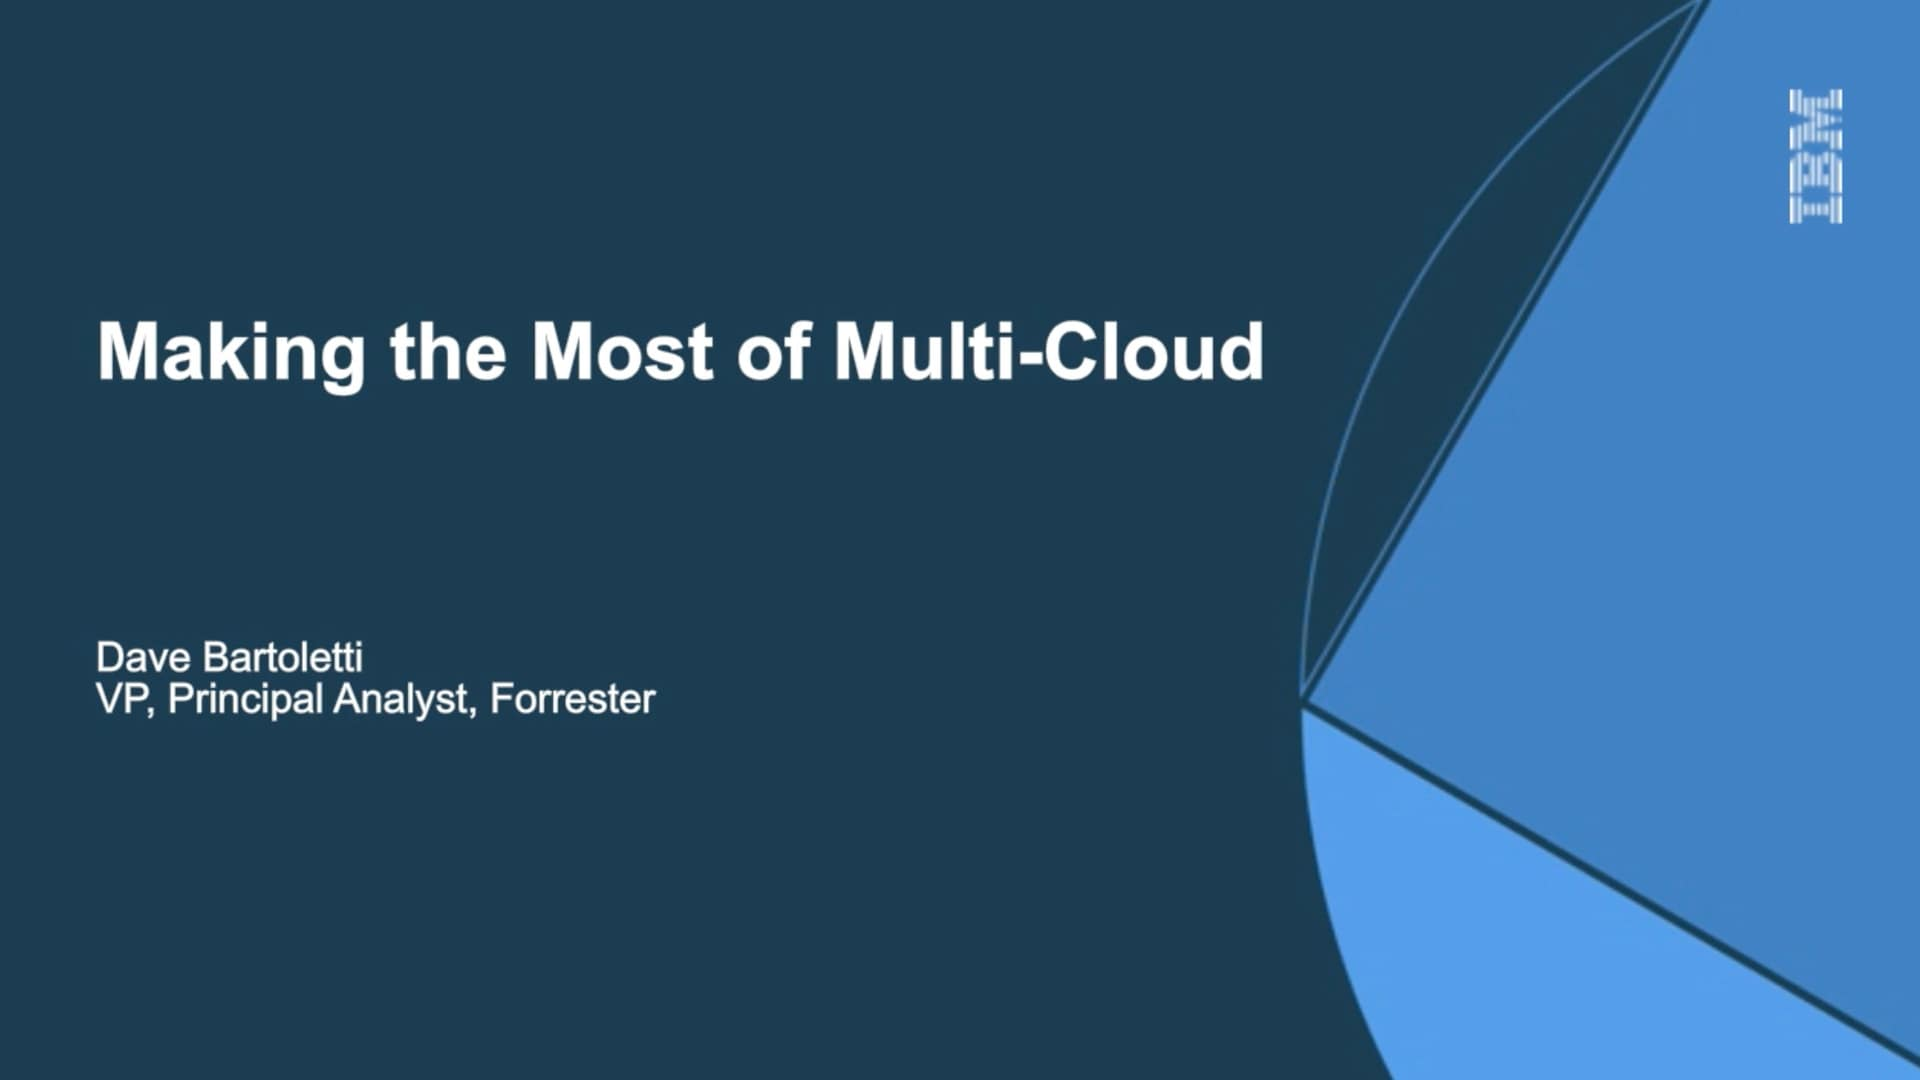 Making the Most of Multi-Cloud